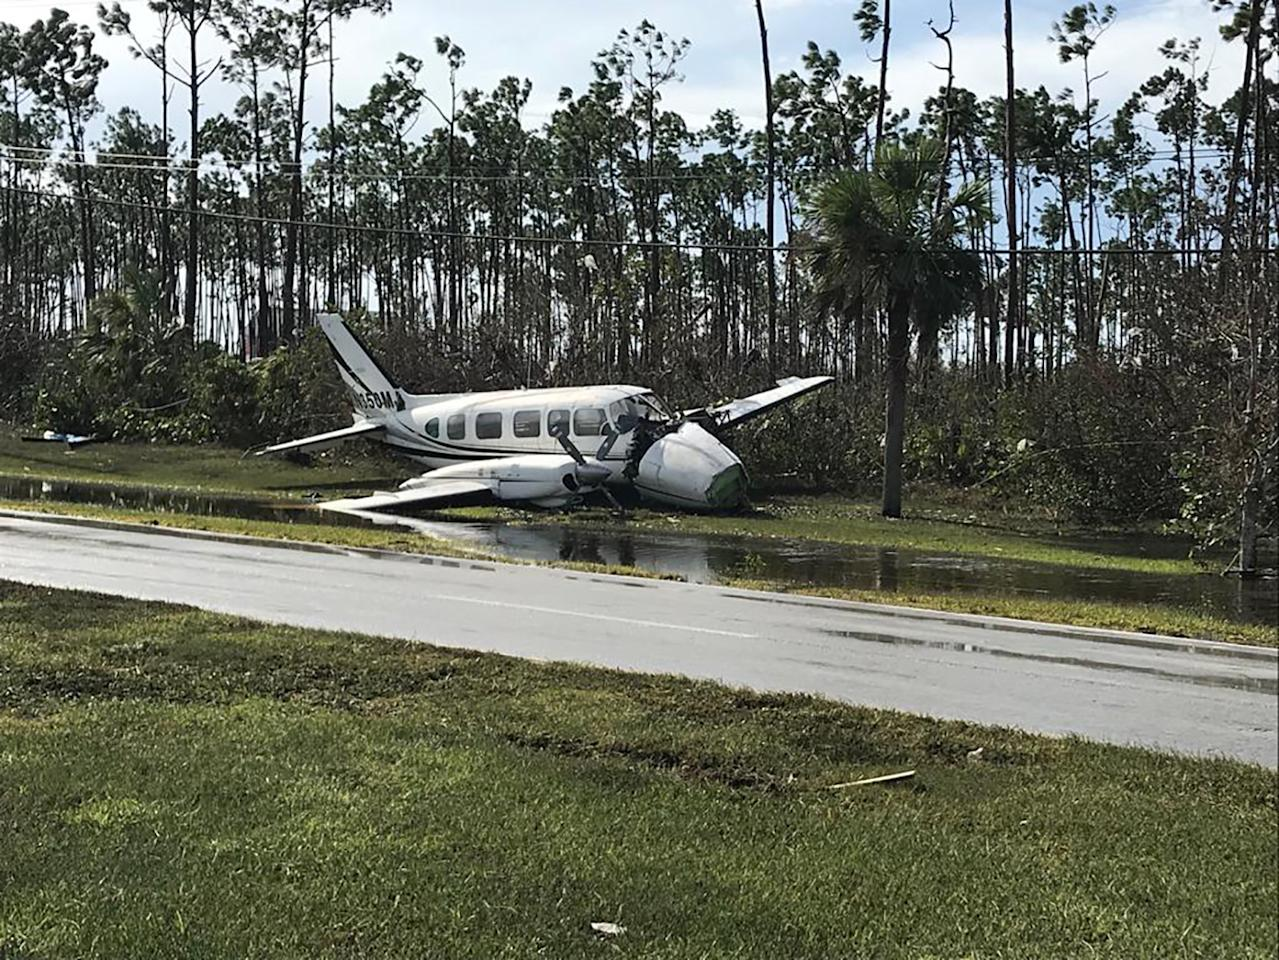 Debris left by Hurricane Dorian litters Grand Bahama International Airport in Freeport (Picture: AFP/Getty)